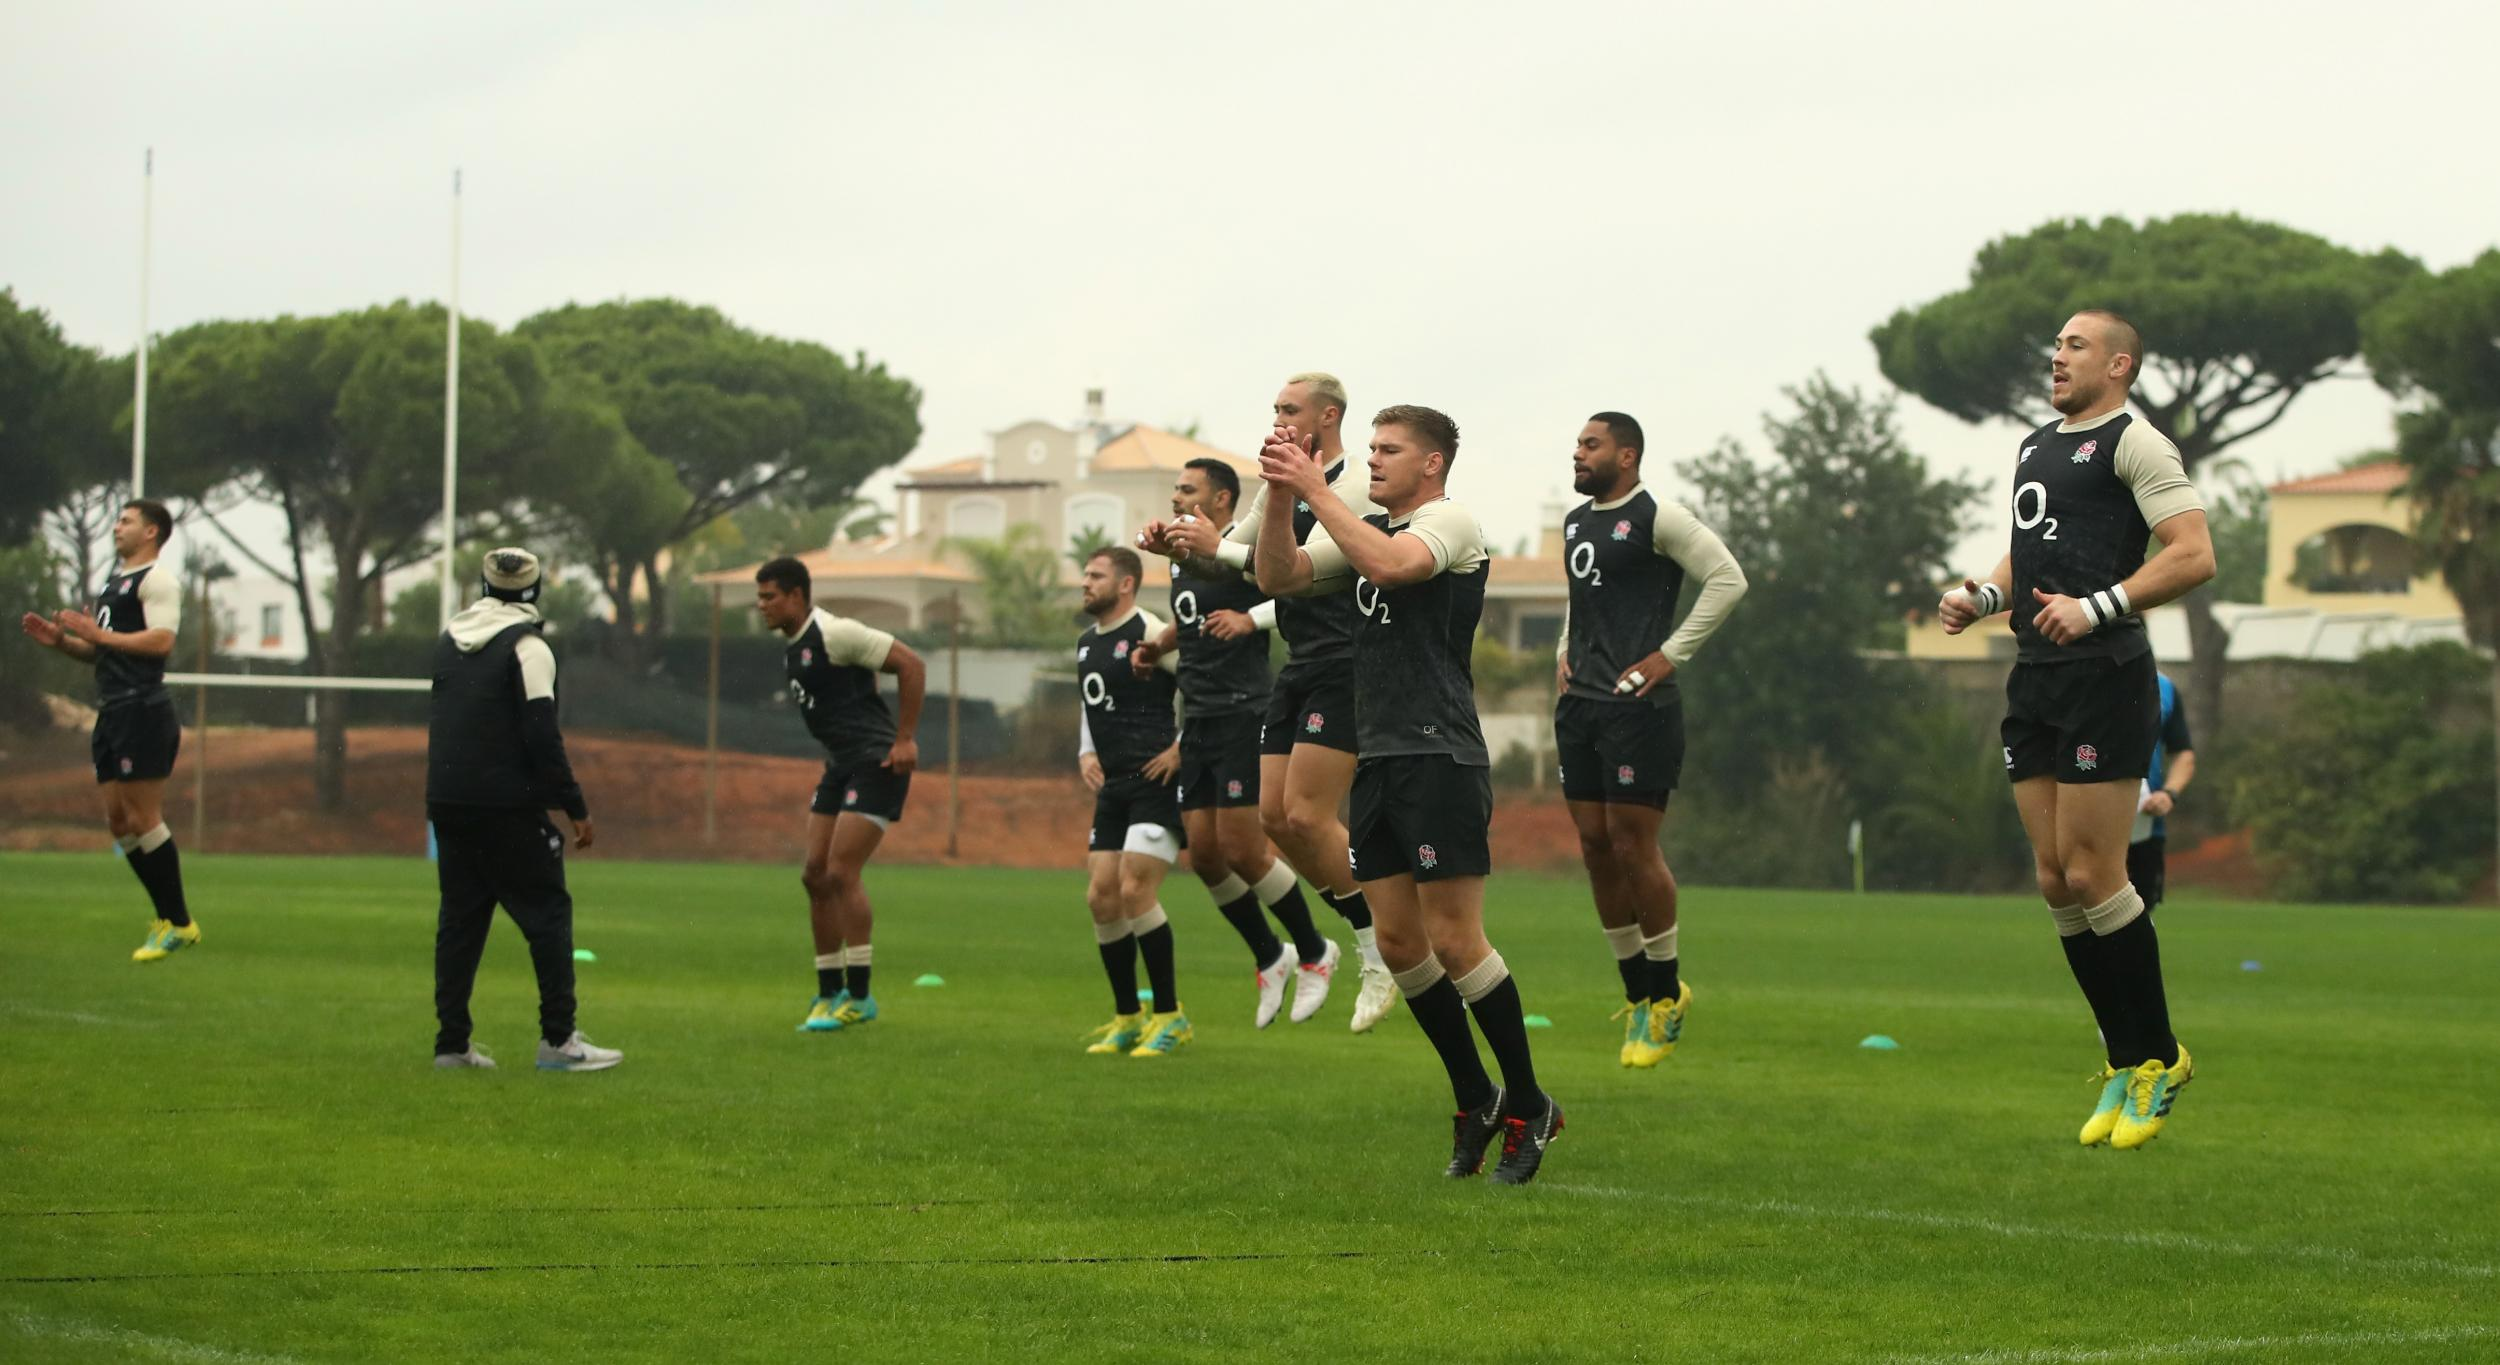 England coaches jet in reinforcements as squad are put through their